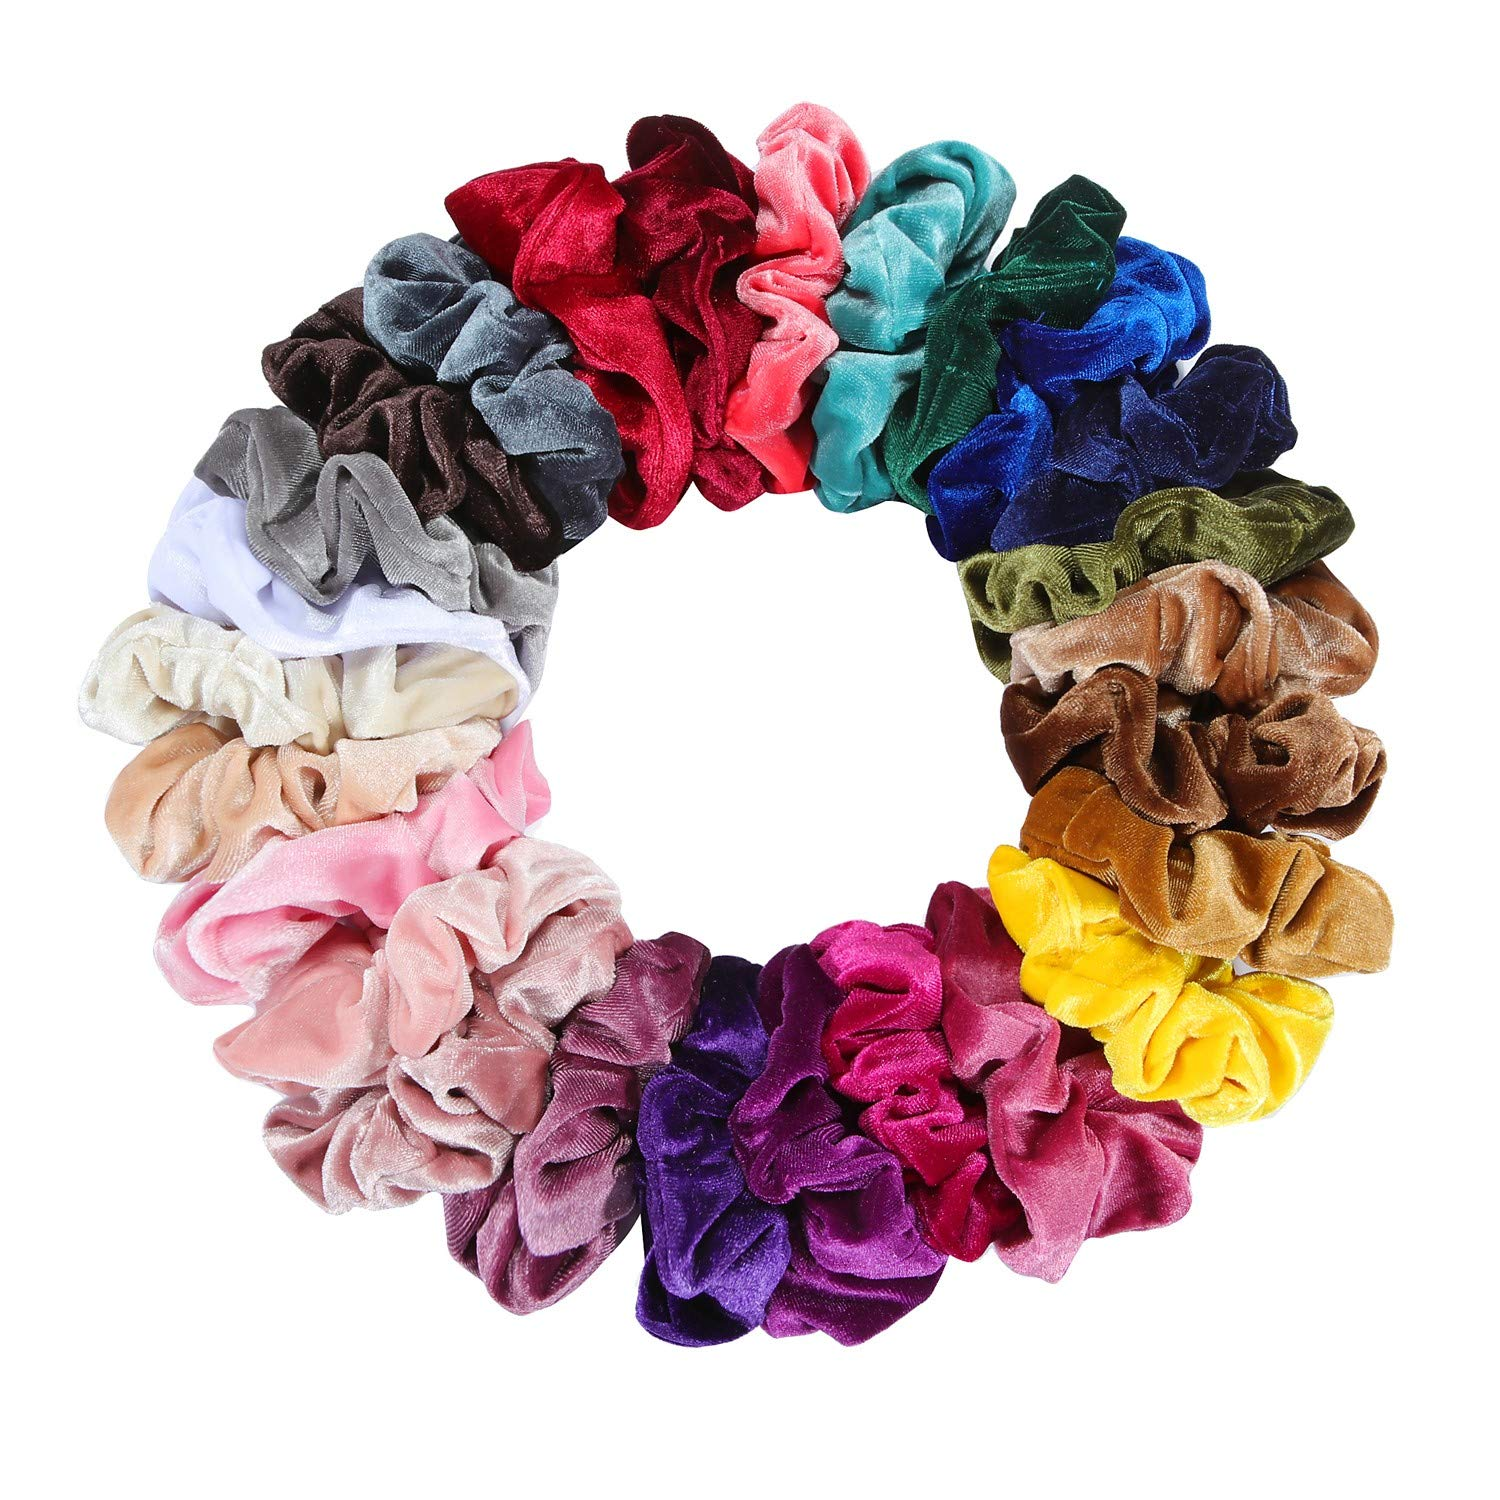 Nxconsu 10Pcs Velvet Hair Scrunchies Silky Cute Elastic Hair Bands Ties  Ropes Hair Stylish Ponytail Accessories Exquisite Colors Selection For  Girls